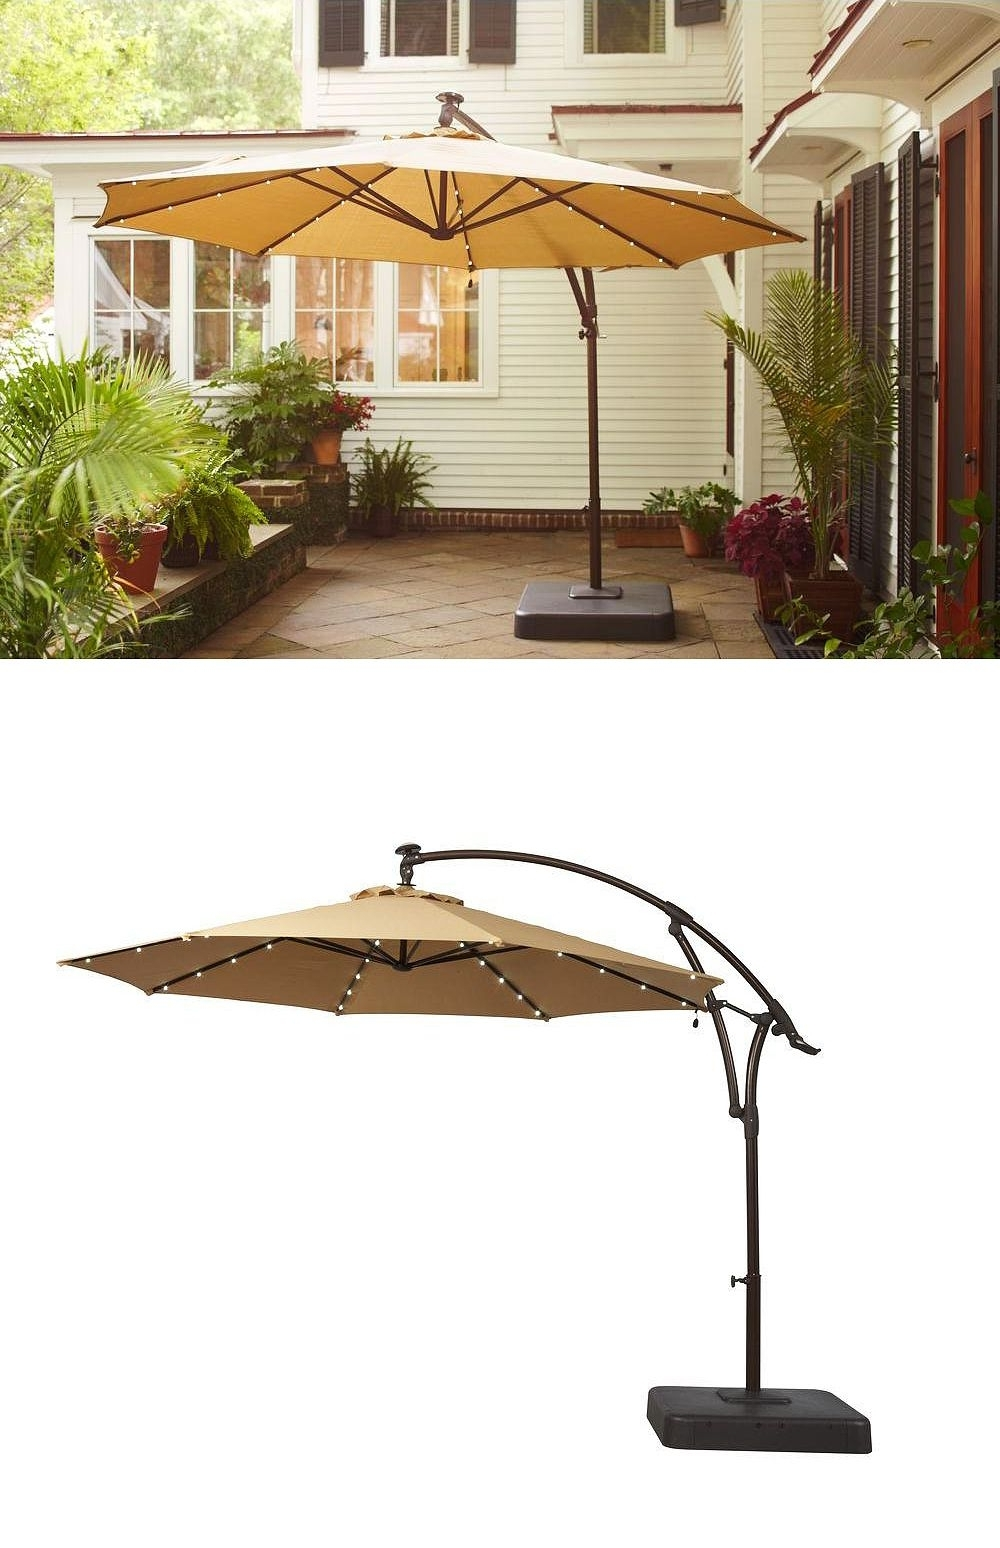 There's Something Special About This Patio Umbrella: It Has Small For 2019 Solar Powered Patio Umbrellas (View 18 of 20)